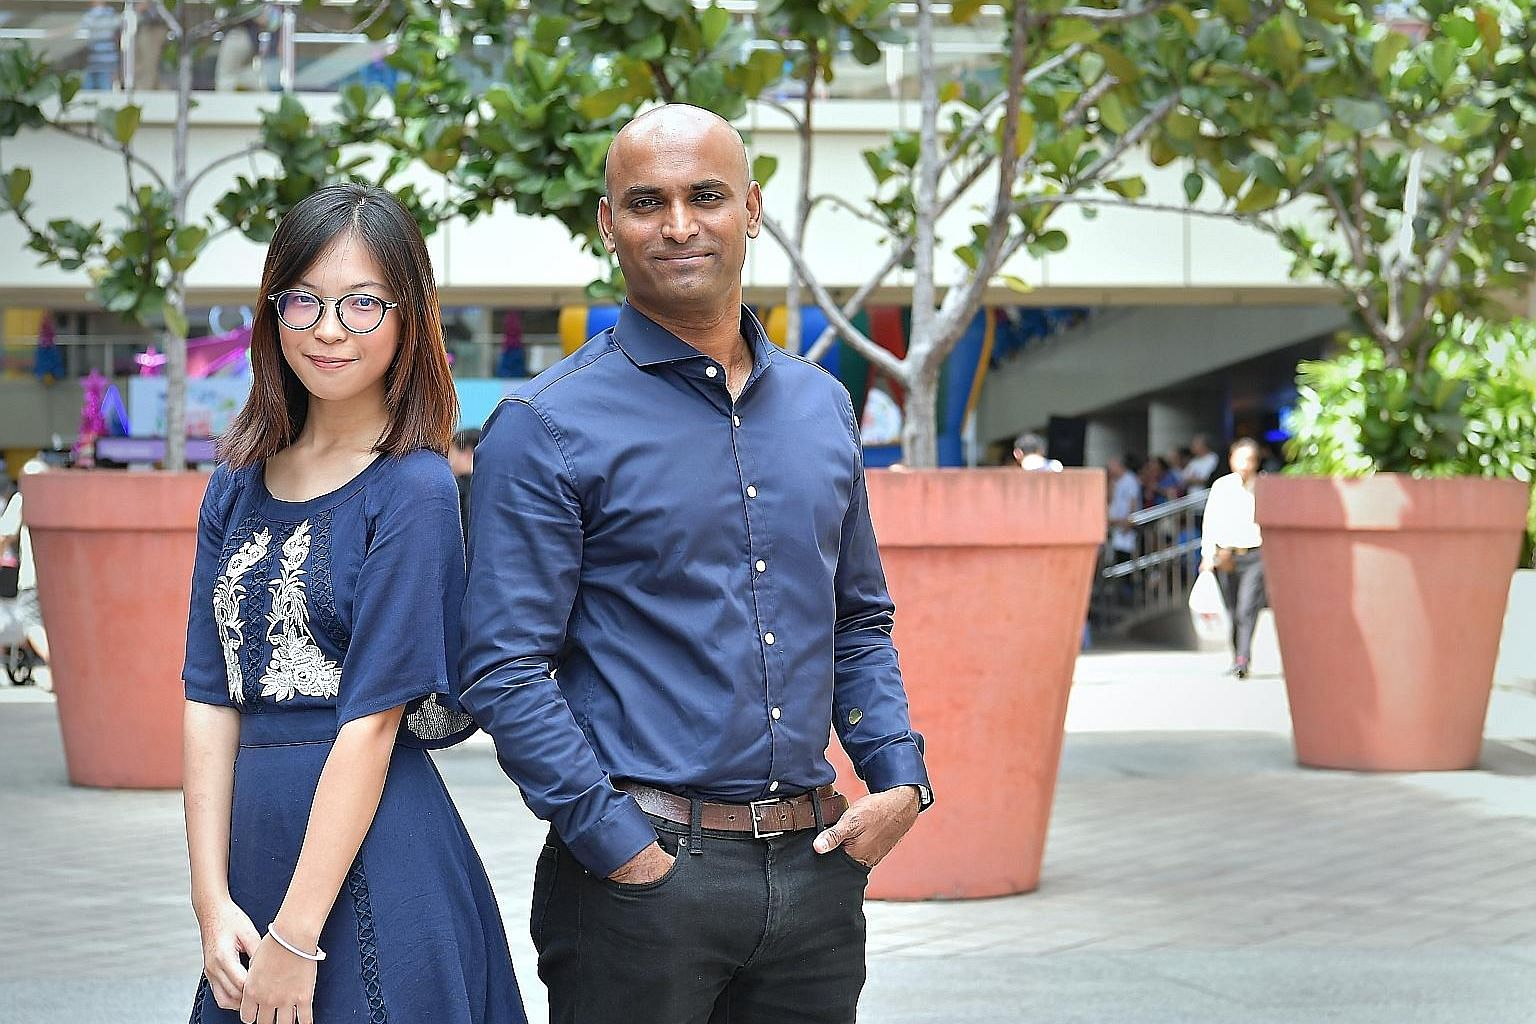 Ms Callie Ng and Mr P. Ramesh are among the 1,500 volunteers involved in the many programmes that Care Corner Singapore offers.